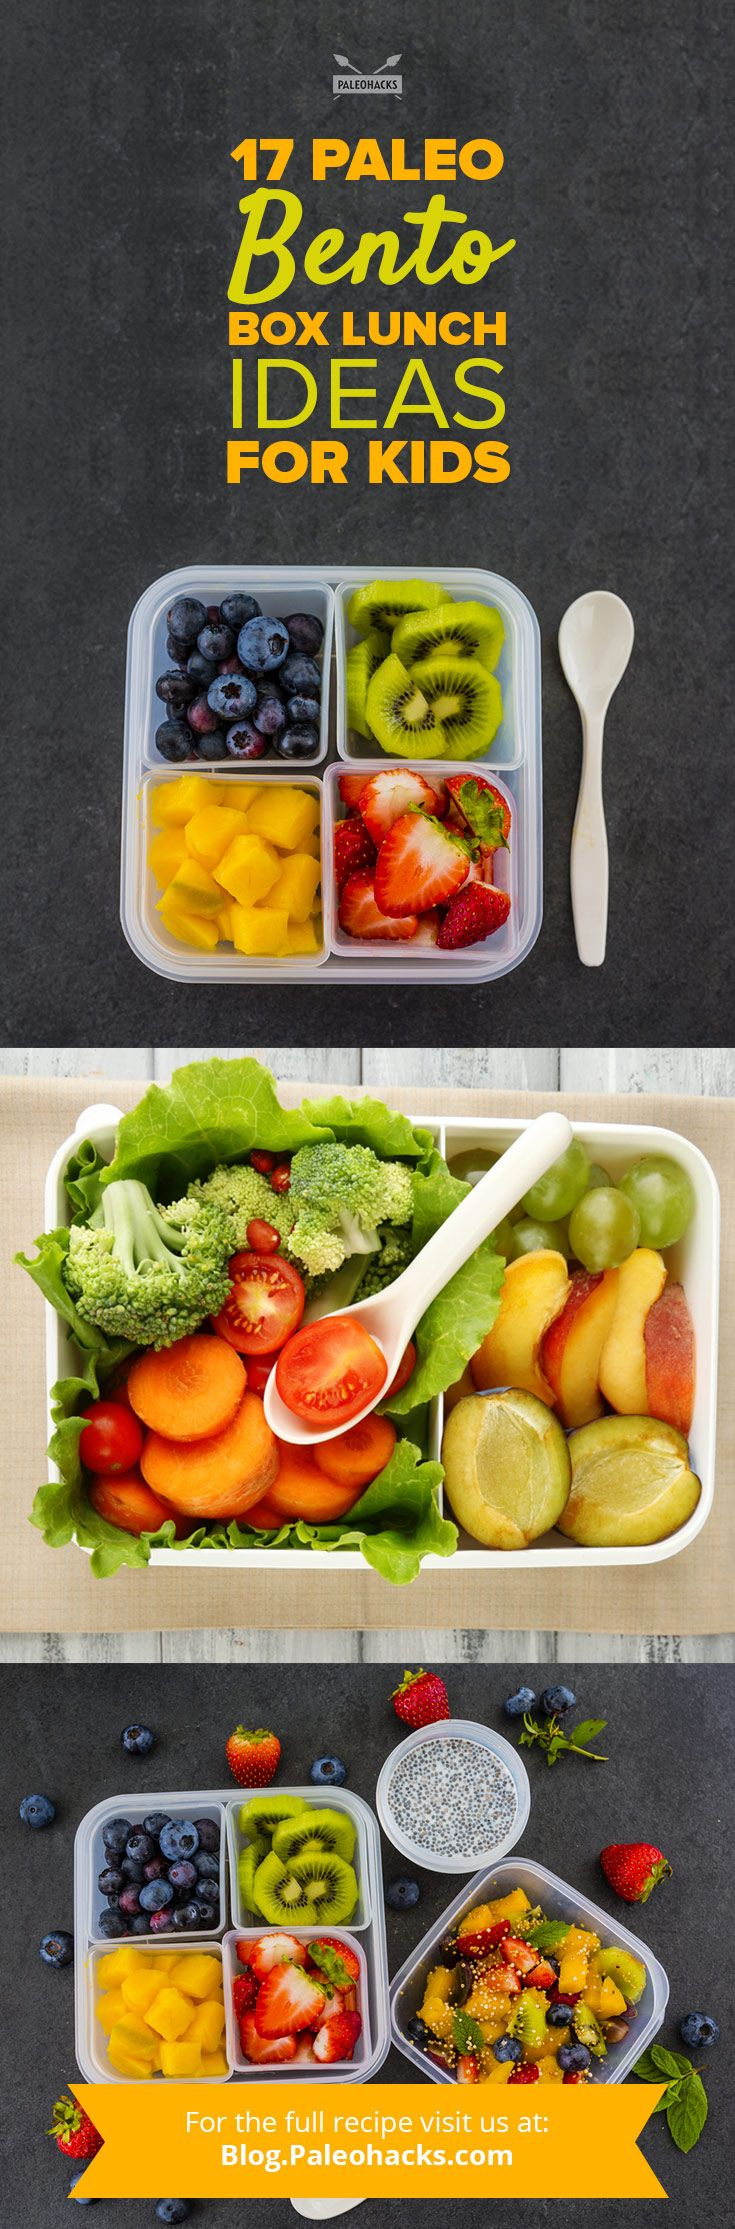 Unless your child happens to attend a pioneering school making the shift toward healthy lunches, you know how difficult it is to come across a nutritious school meal. For Paleo families, this means you dutifully pack your kids' meals every day—and if you do, you deserve major kudos, because we know how much effort that takes. Get all the recipe ideas here: http://paleo.co/bentoboxlunchrcps